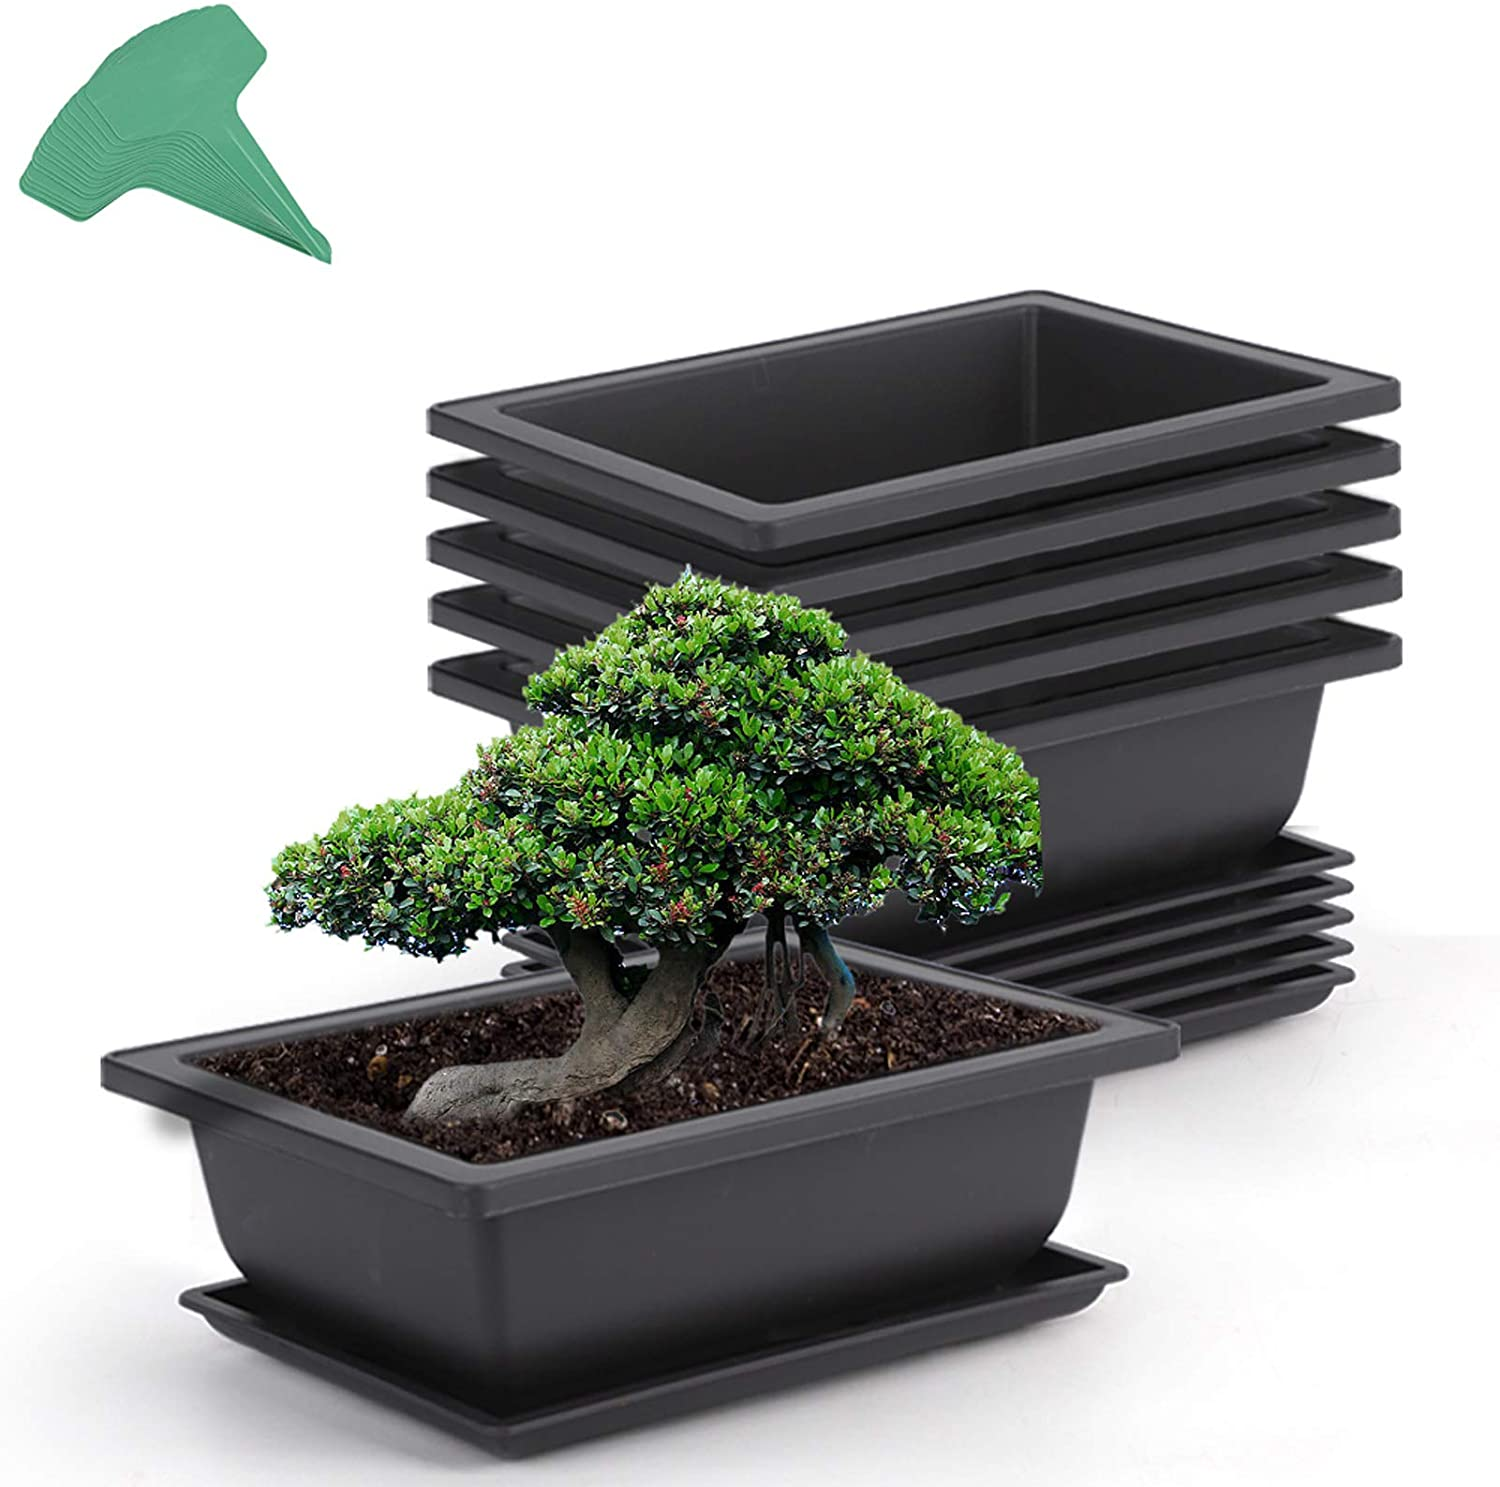 Amazon Com Growneer 6 Packs 9 Inches Bonsai Training Pots With 15 Pcs Plant Labels Plastic Bonsai Plants Growing Pot For Garden Yard Office Living Room Balcony And More Garden Outdoor